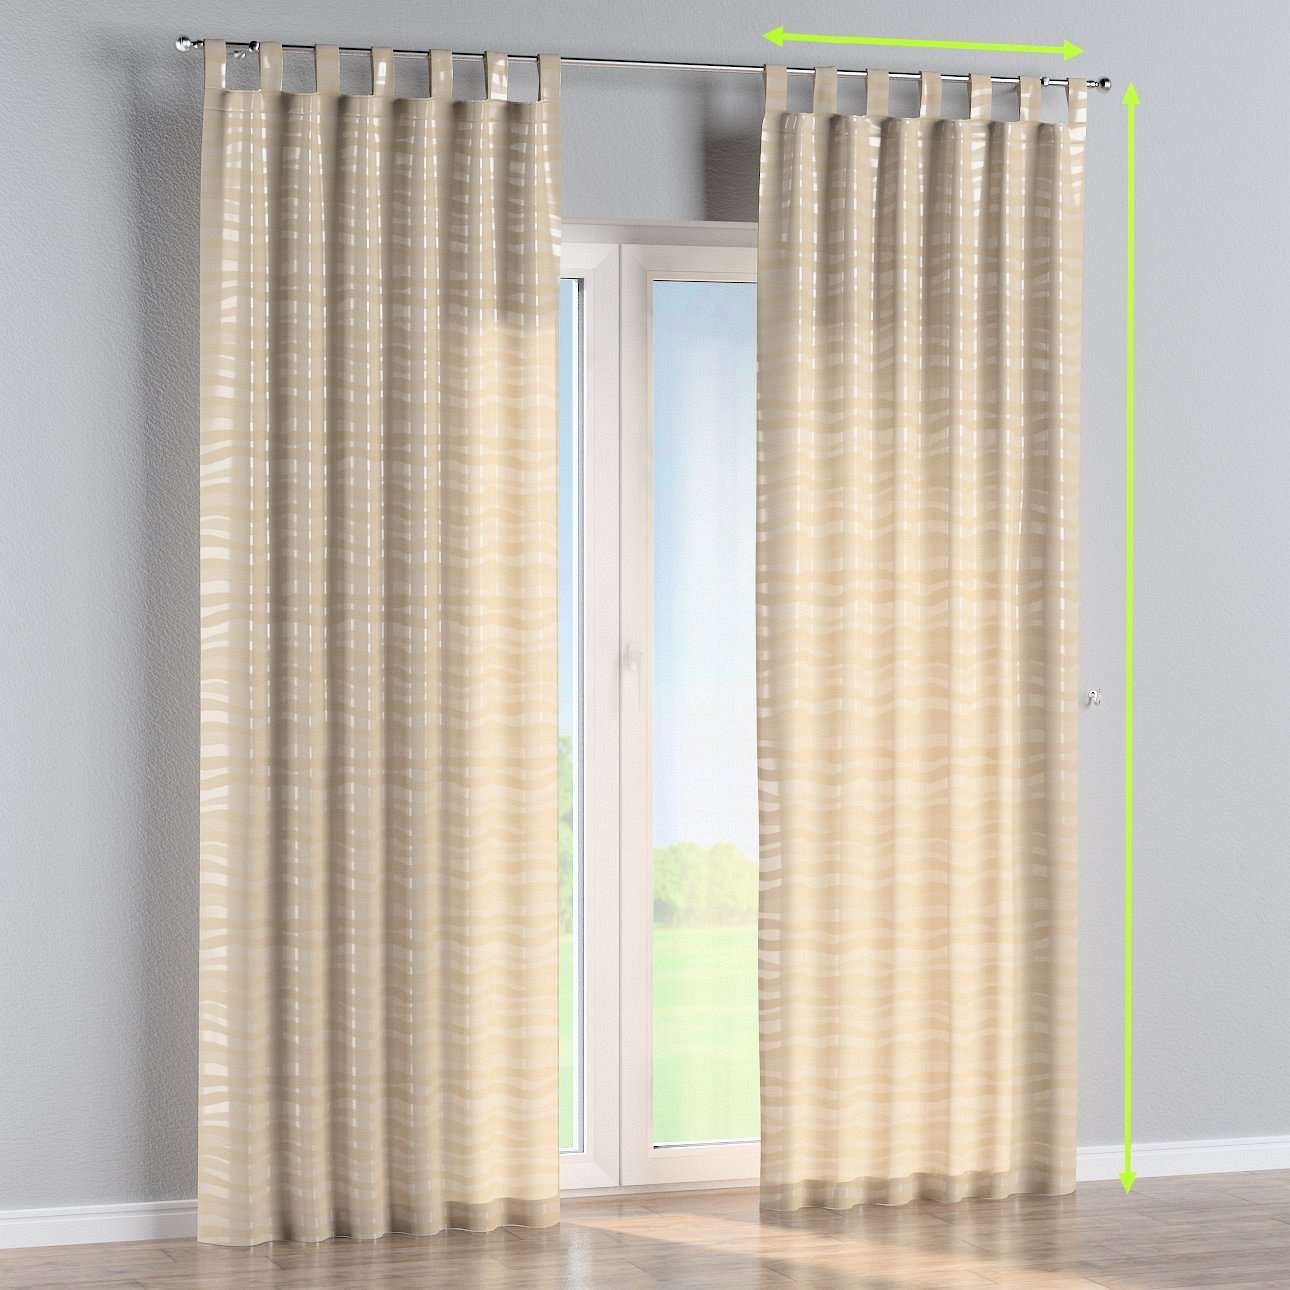 Tab top curtains in collection Damasco, fabric: 141-76